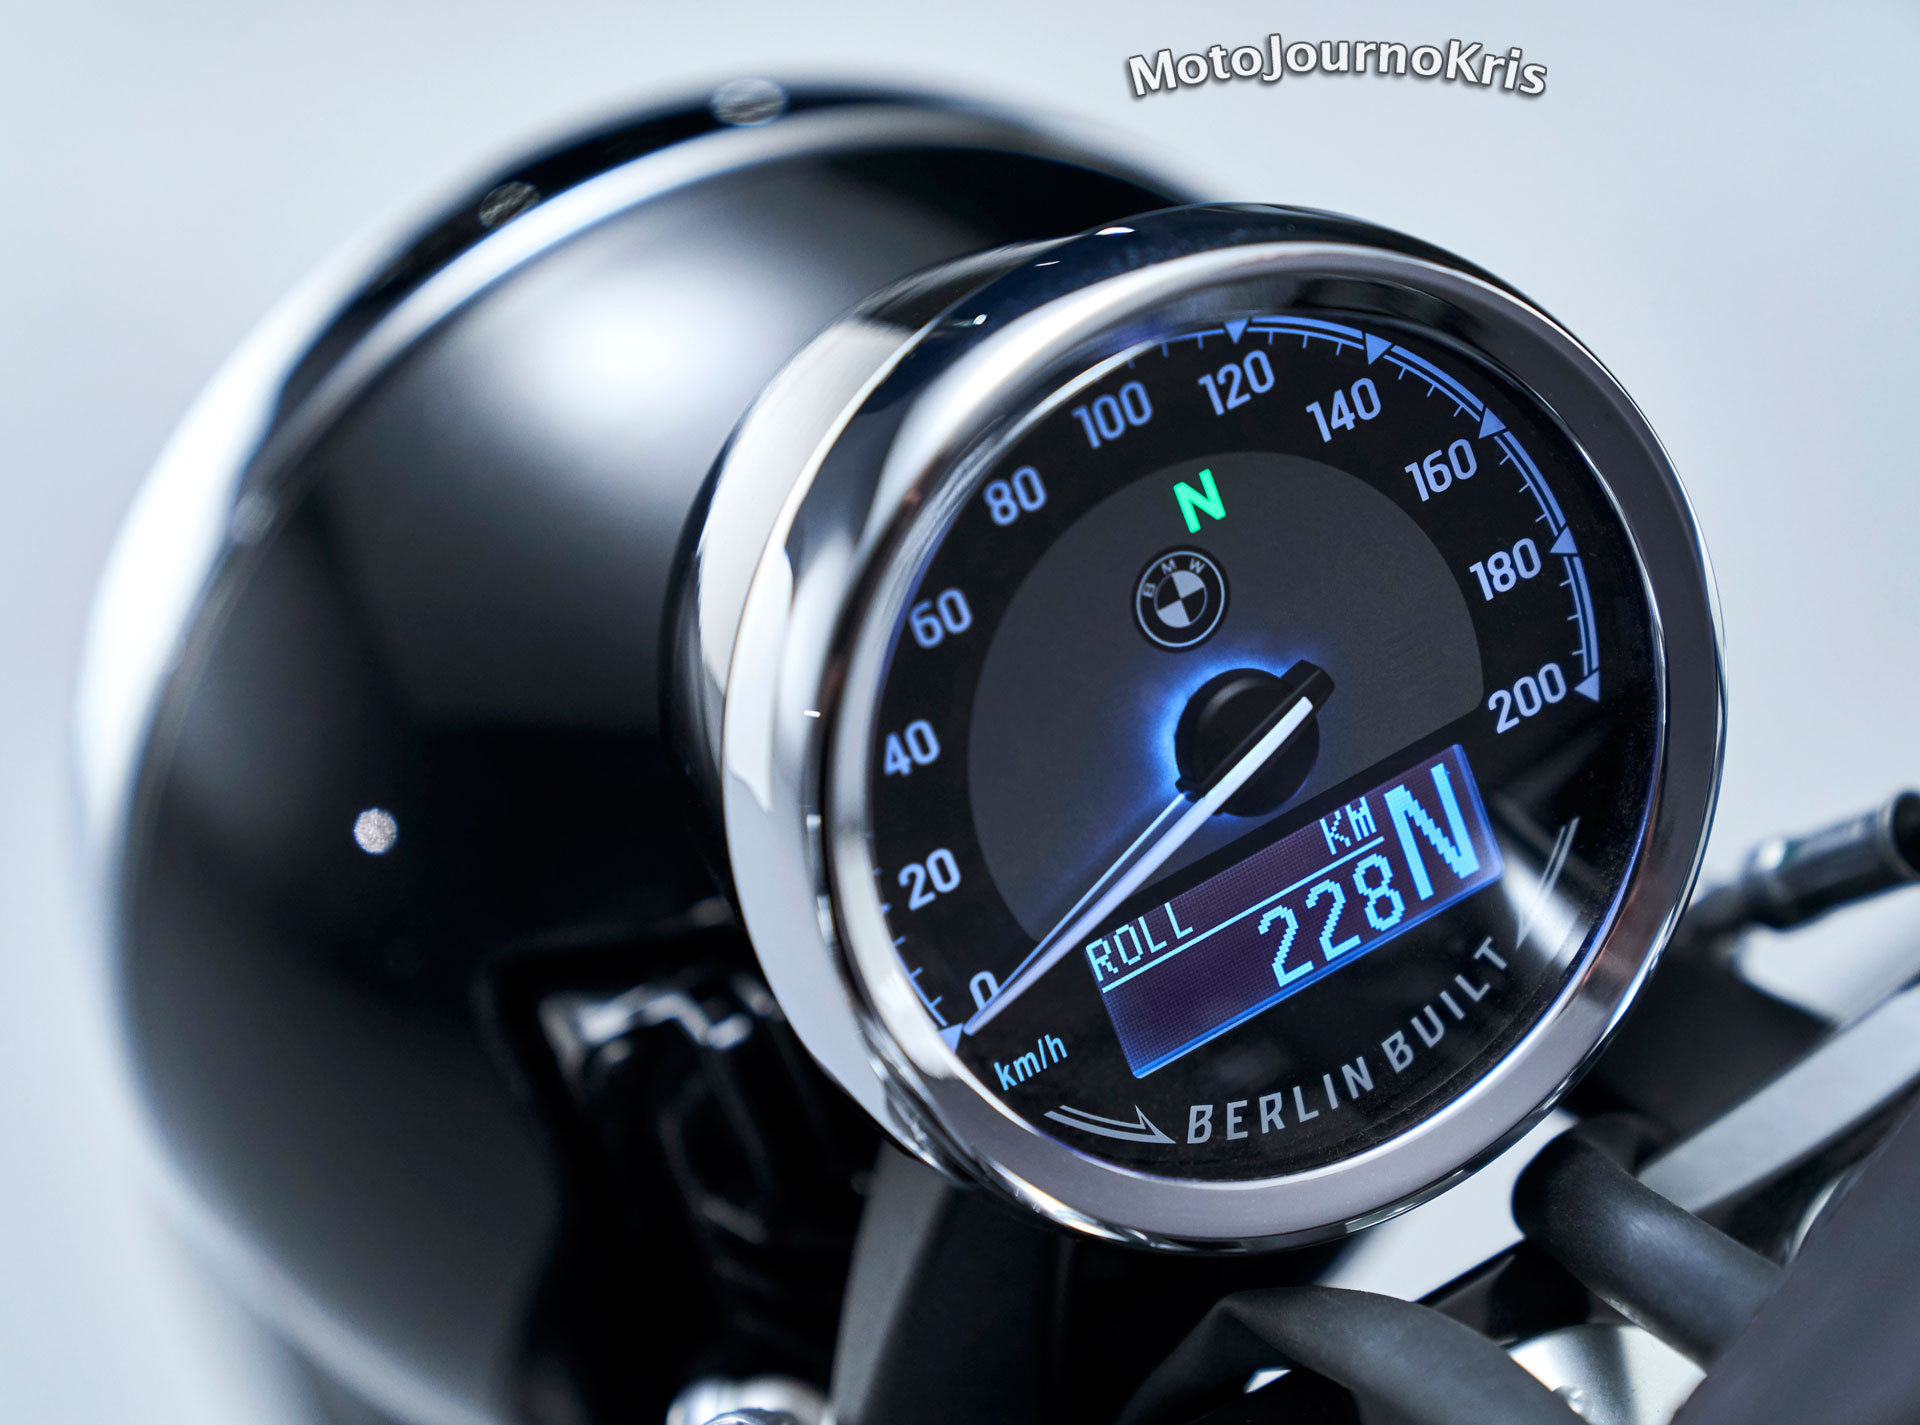 2020 BMW R 18 cruiser analogue dash with digital readout